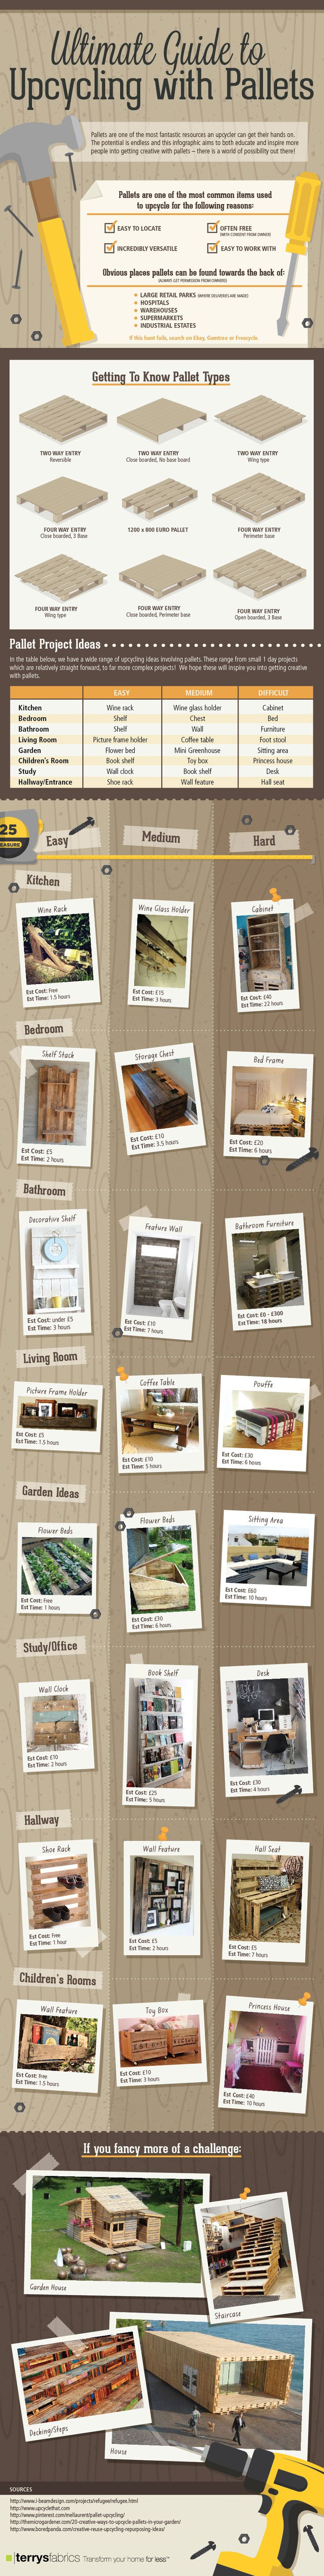 Ultimate Guide to Upcycling with Pallets - Recyclart